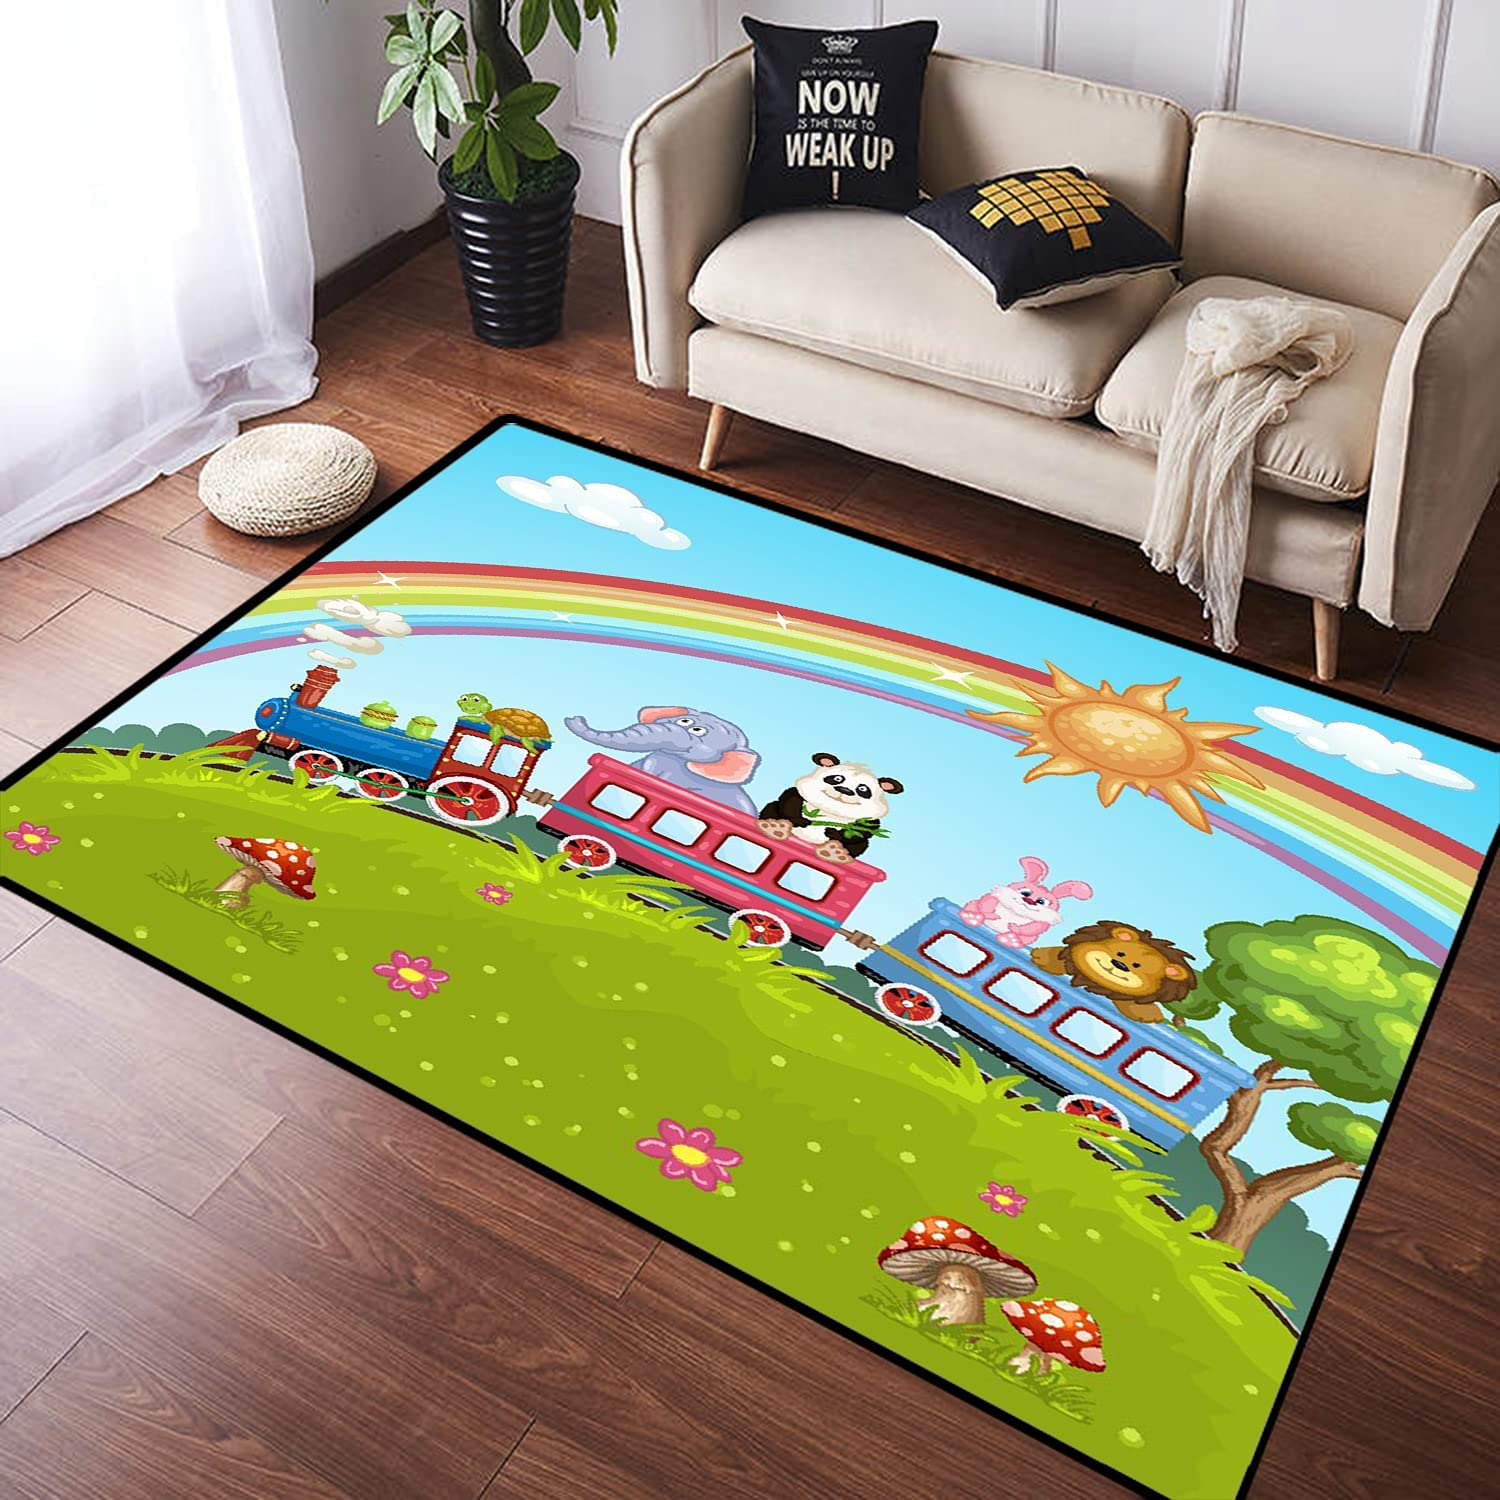 ZOMOY Long Floor Mat Carpet Cute Train Non-Slip on Max 50% OFF Absorb Be super welcome Animal